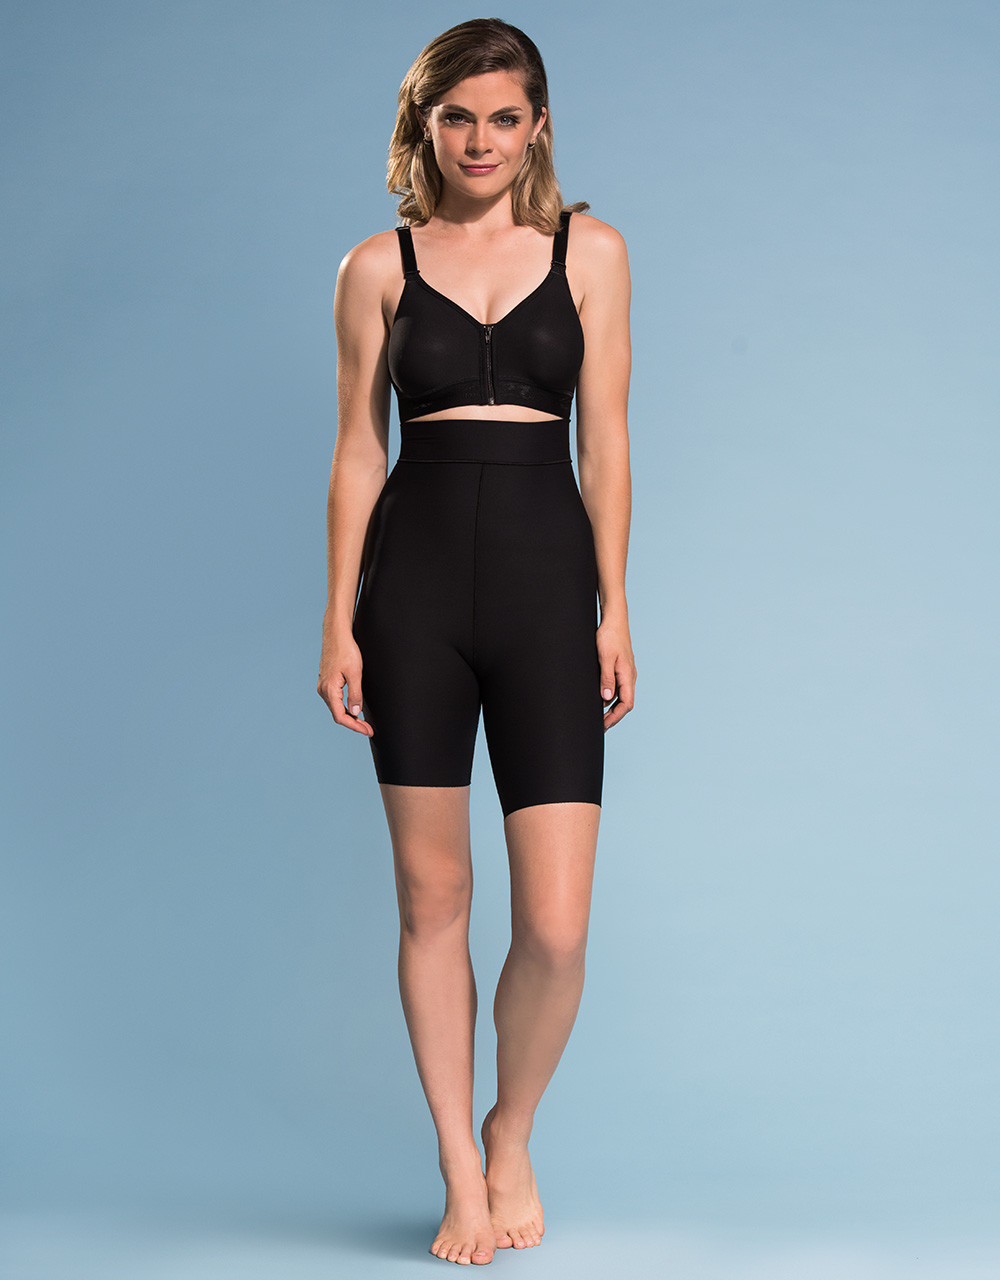 be2fbfcf33 Marena Shape ME-421 high-waist compression shorts, seen here with the B09Z